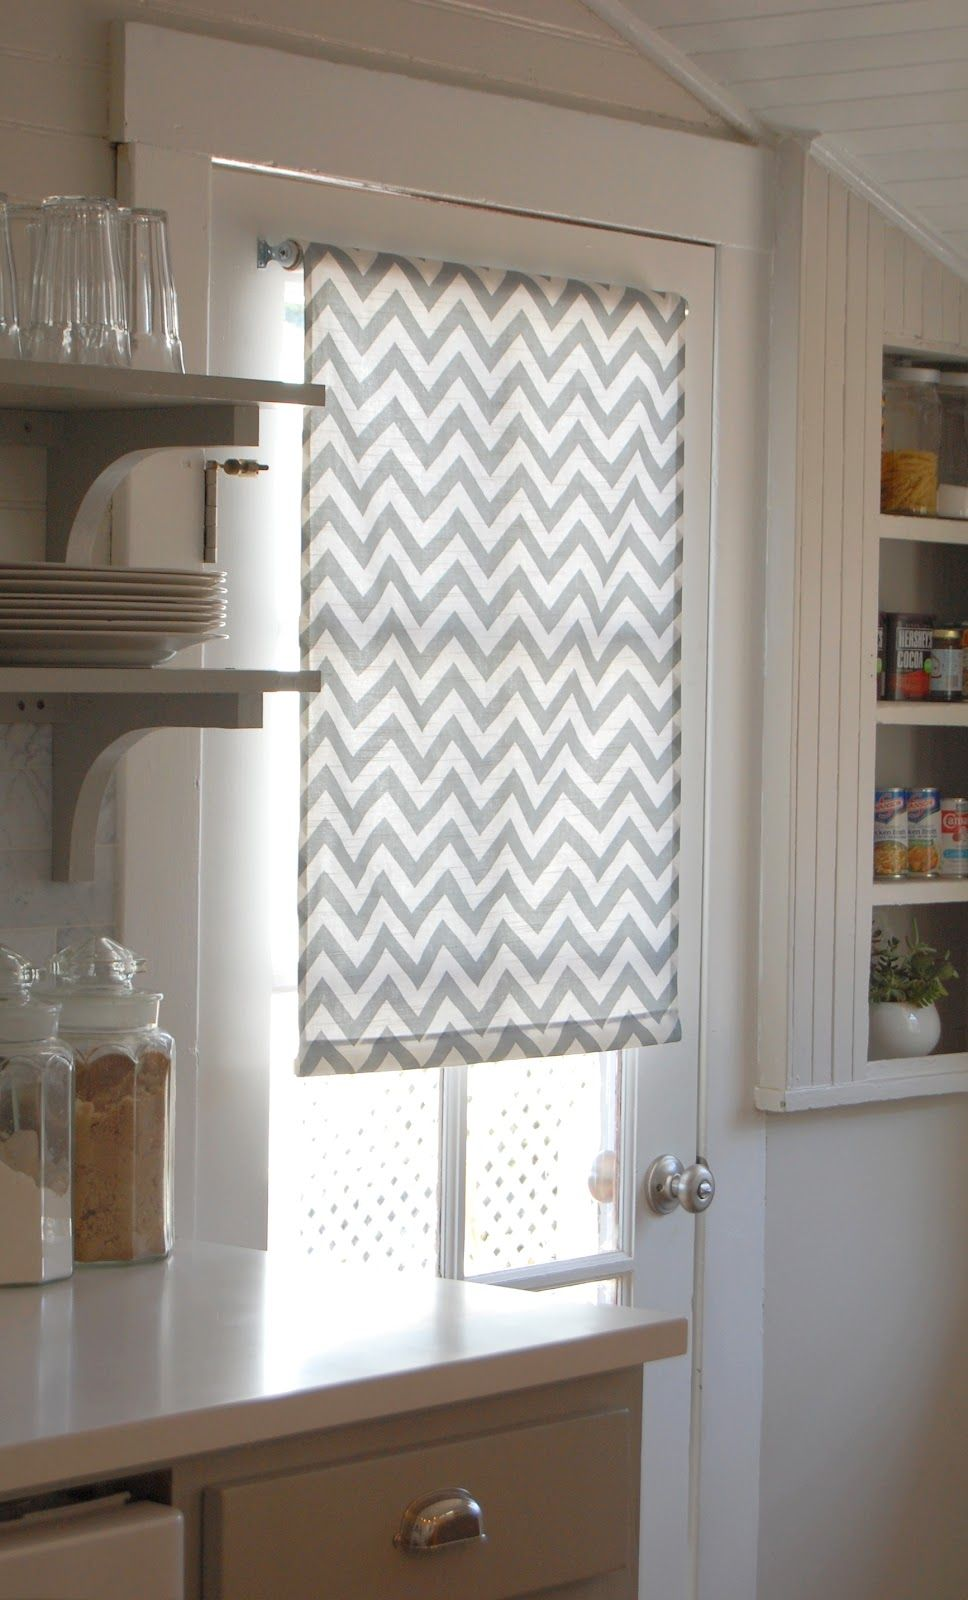 Love and Life at Leadora: DIY Roller Shades 101 | DIY Projects ...